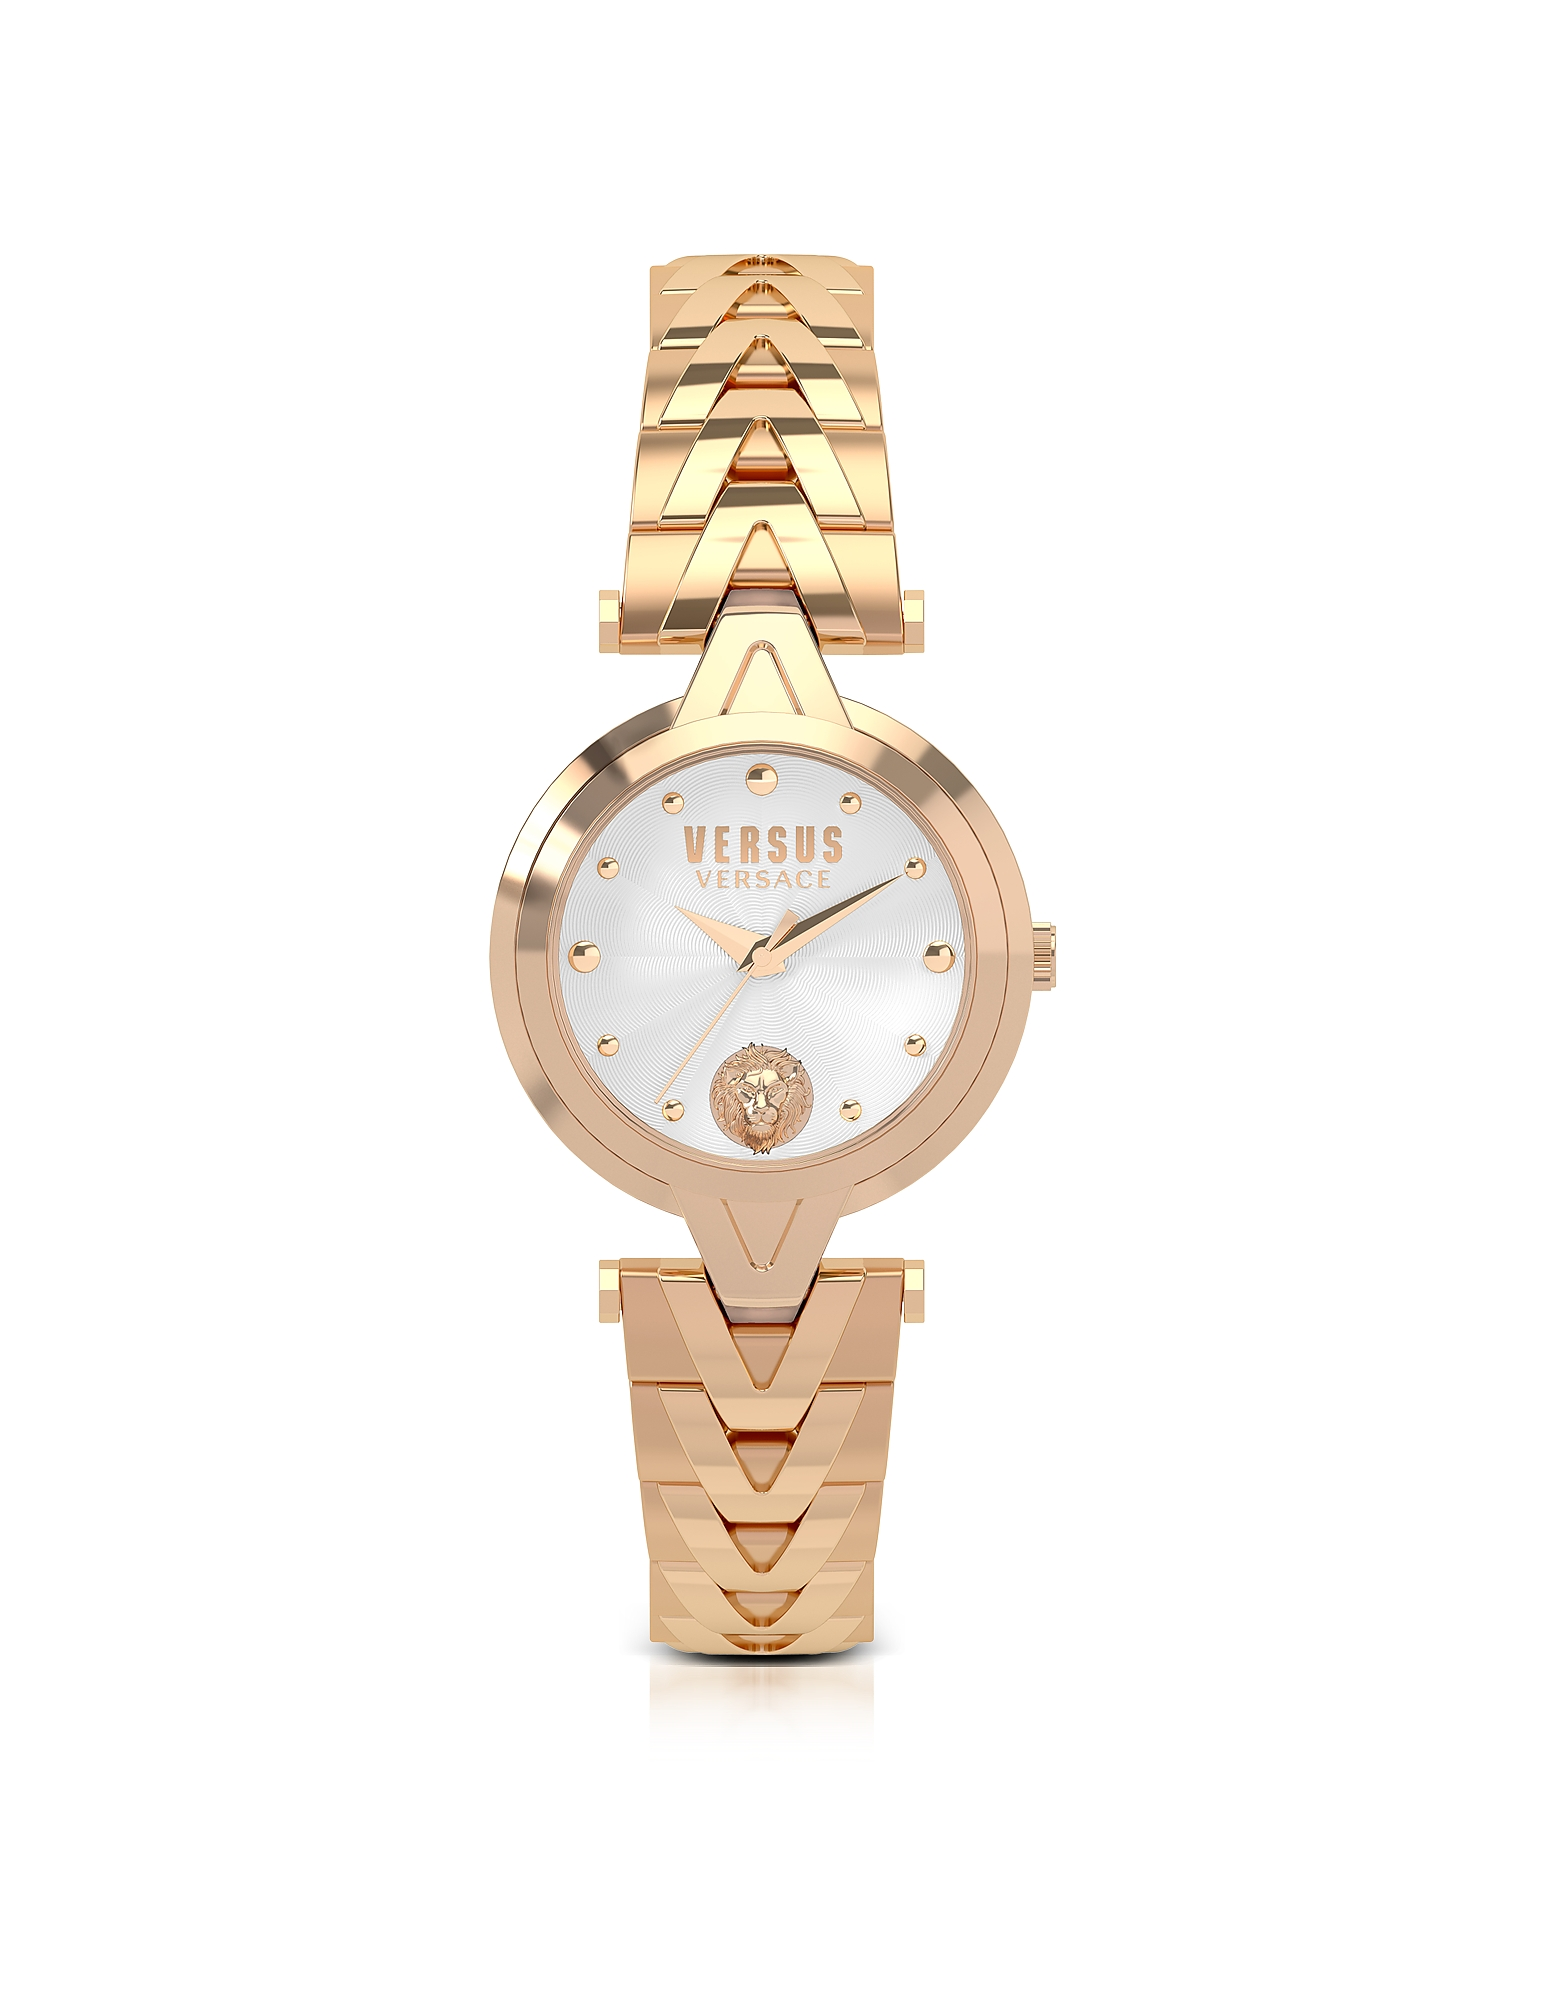 V Versus Rose Gold Tone Stainless Steel Women's Bracelet Watch Versace Versus